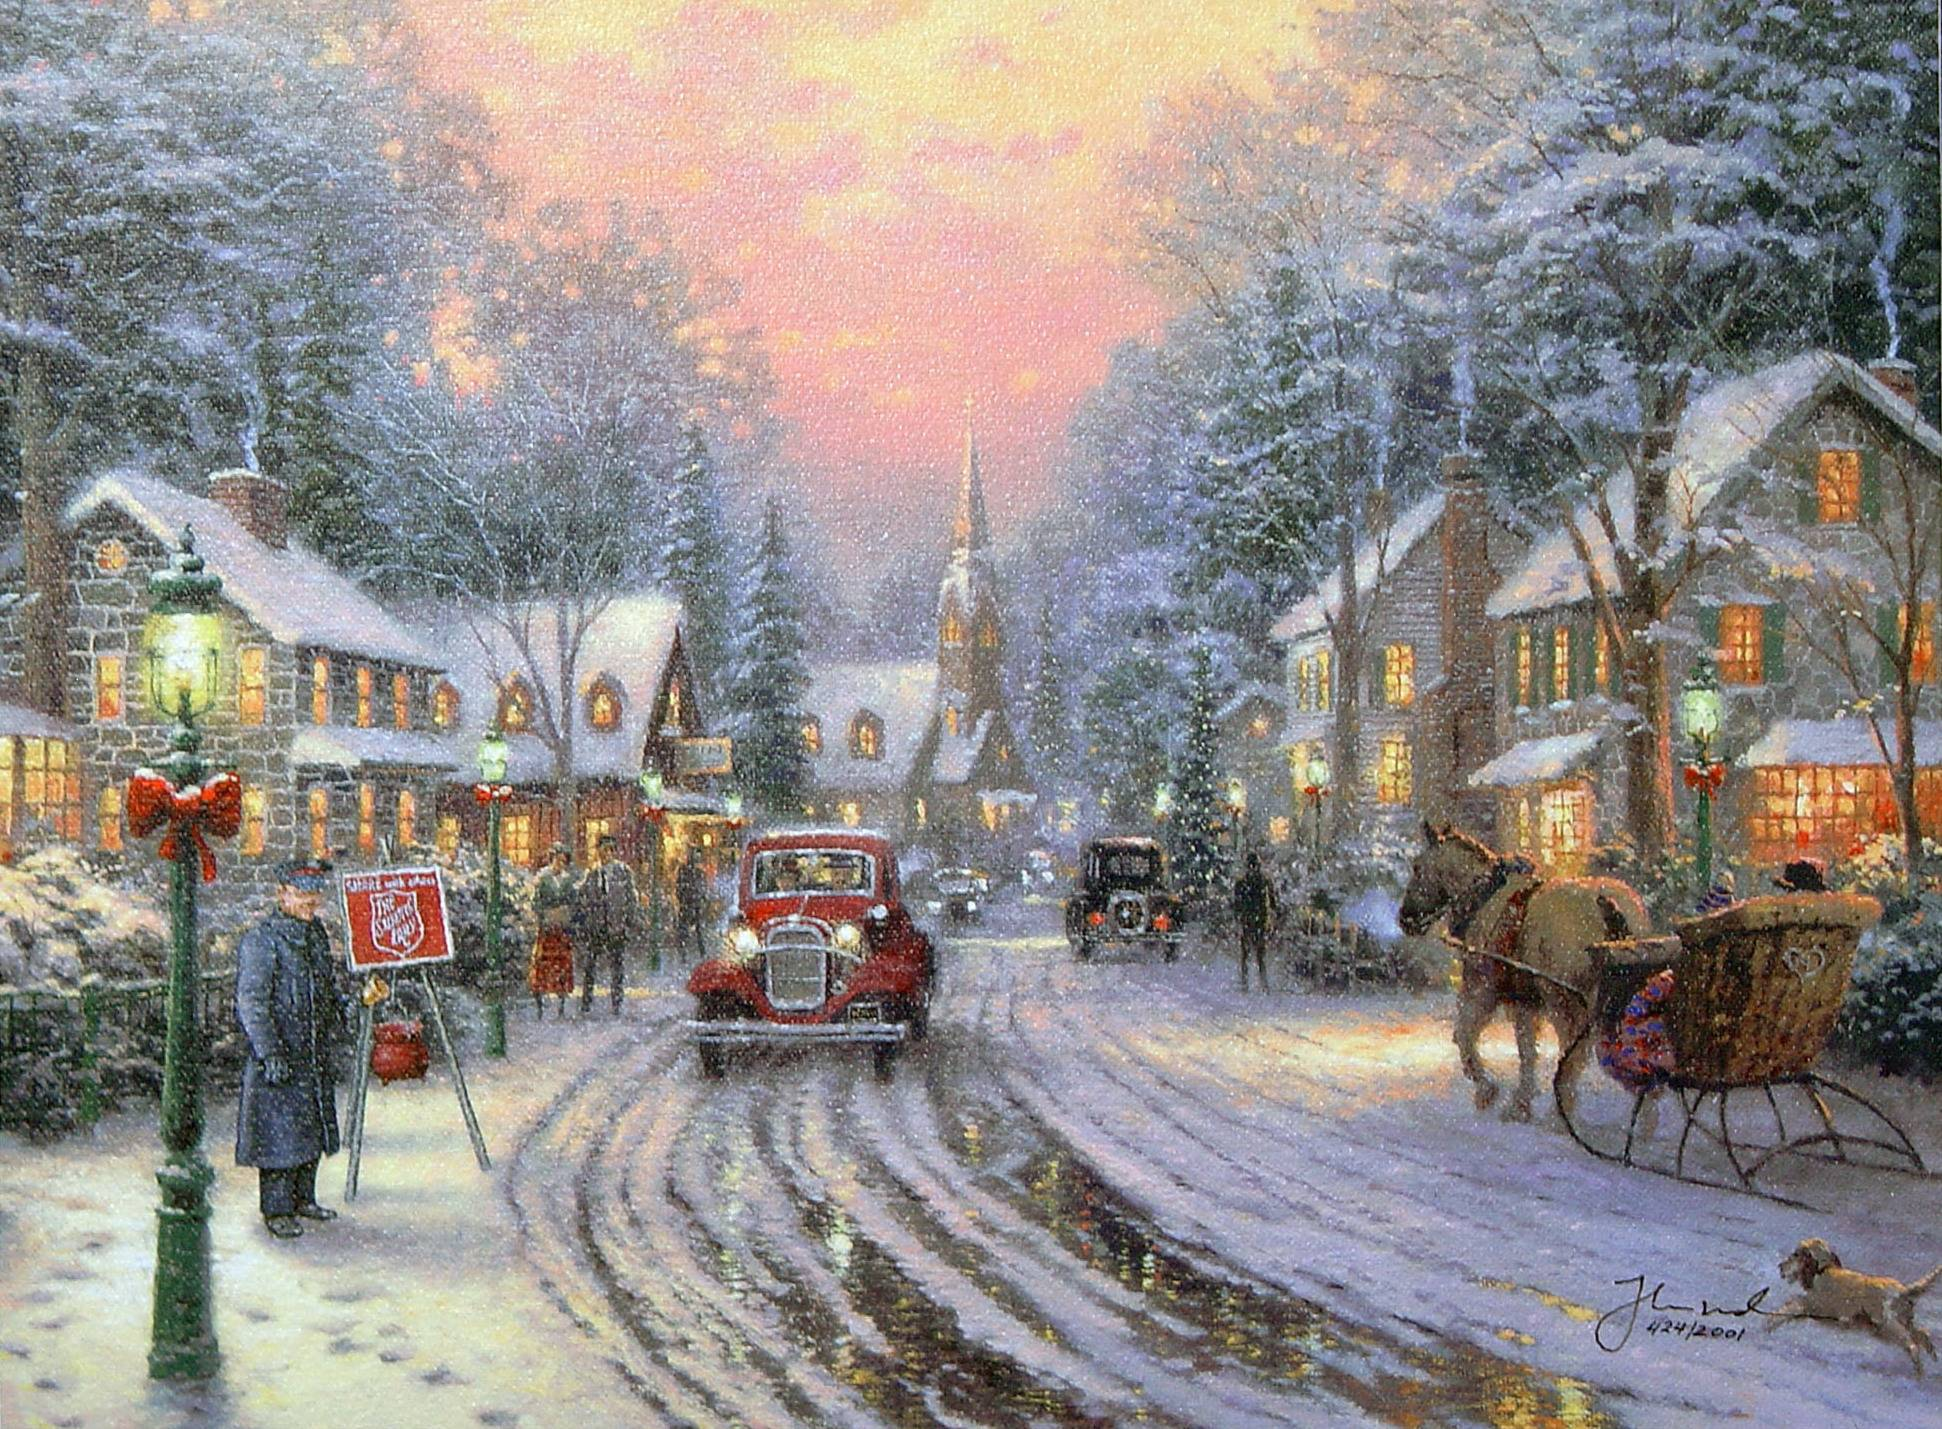 Free thomas kinkade wallpapers wallpaper cave - Art village wallpaper ...